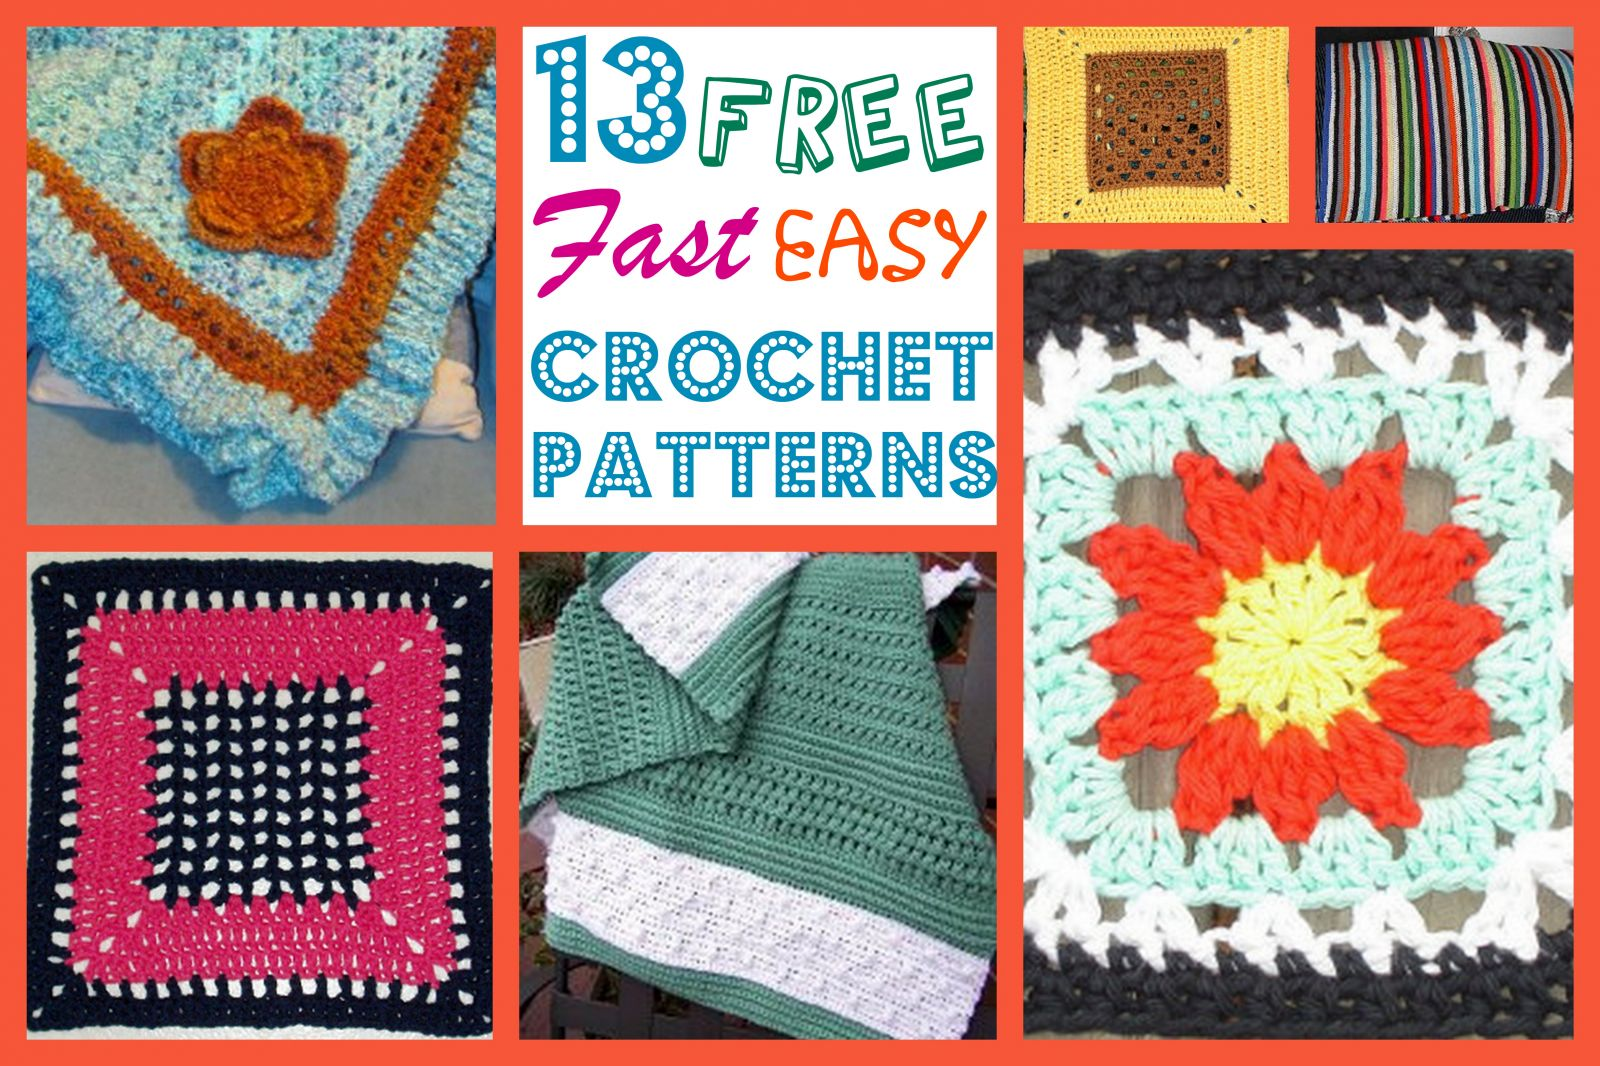 Free Afghan Patterns Crochet Quick Easy : 13 Free, Fast, Easy Crochet Patterns ...